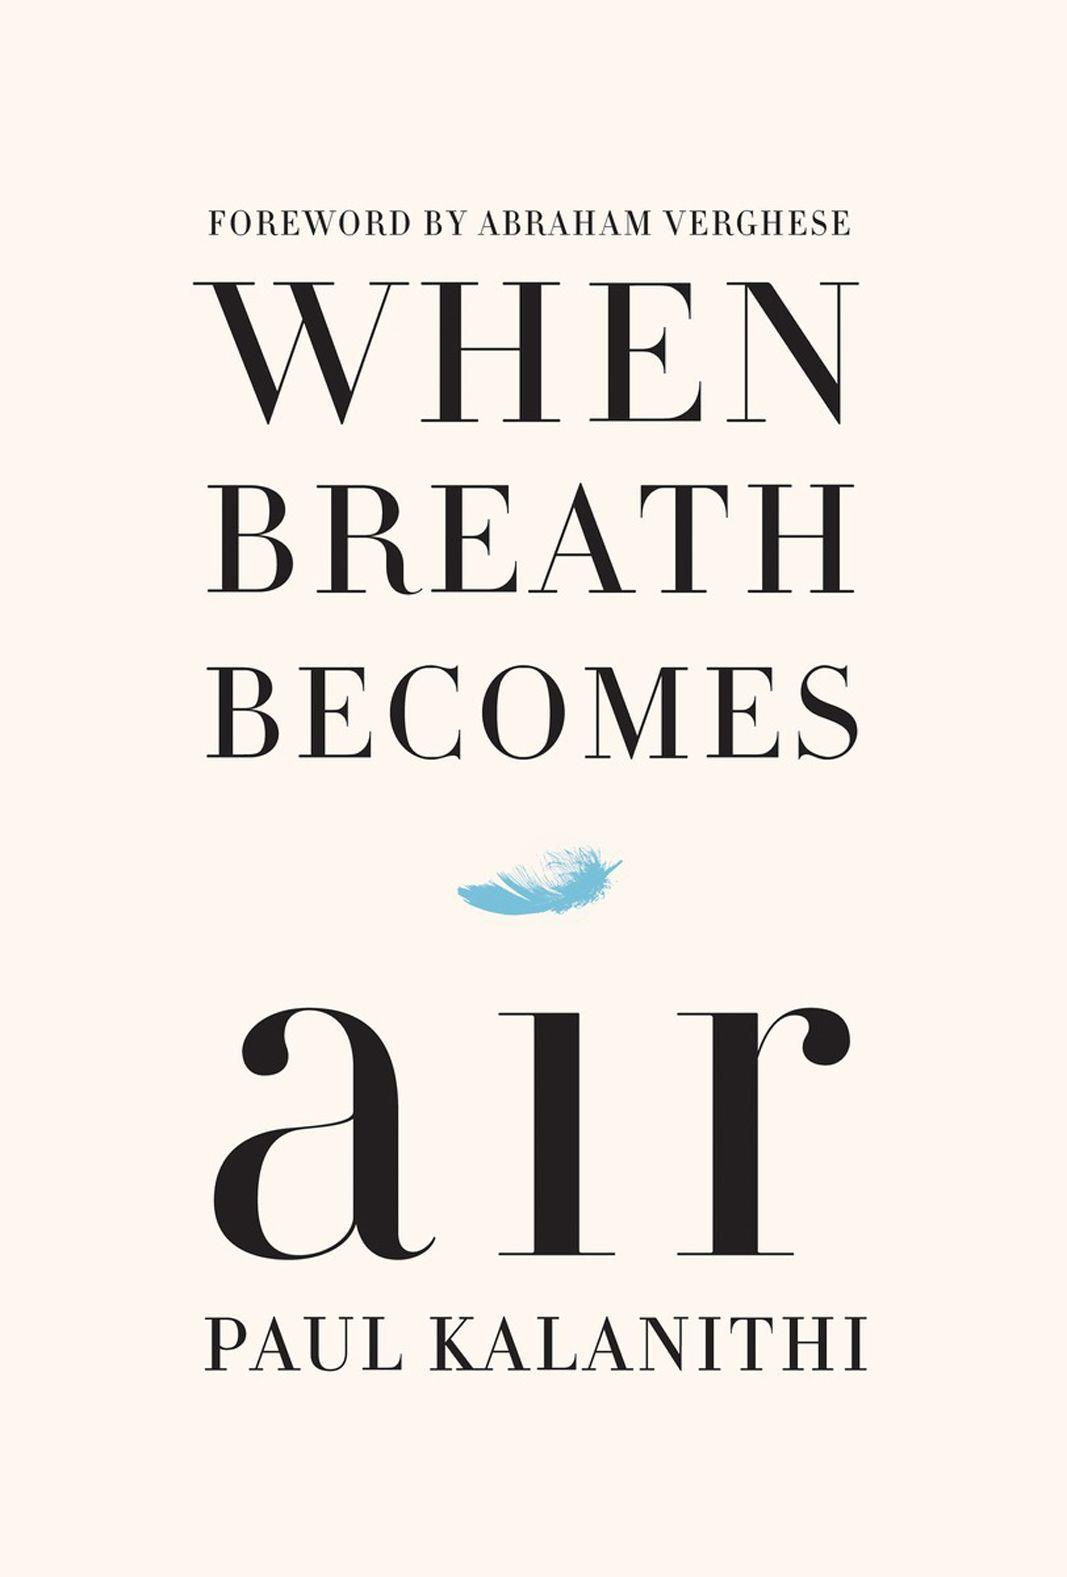 <p><strong><em>When Breath Becomes Air</em></strong></p> <p>By Paul Kalanithi</p> <p>Paul Kalanithi was a neurosurgeon and writer who died from lung cancer in March 2015. <em>When Breath Becomes Air</em> is his unforgettably powerful and heartbreaking memoir. It delves into some of the biggest questions we ponder as humans: What makes life worth living as we approach death? What do you do when your future is suddenly in doubt? What does it mean to have a child as your own life fades away? Tissues at the ready! </p>